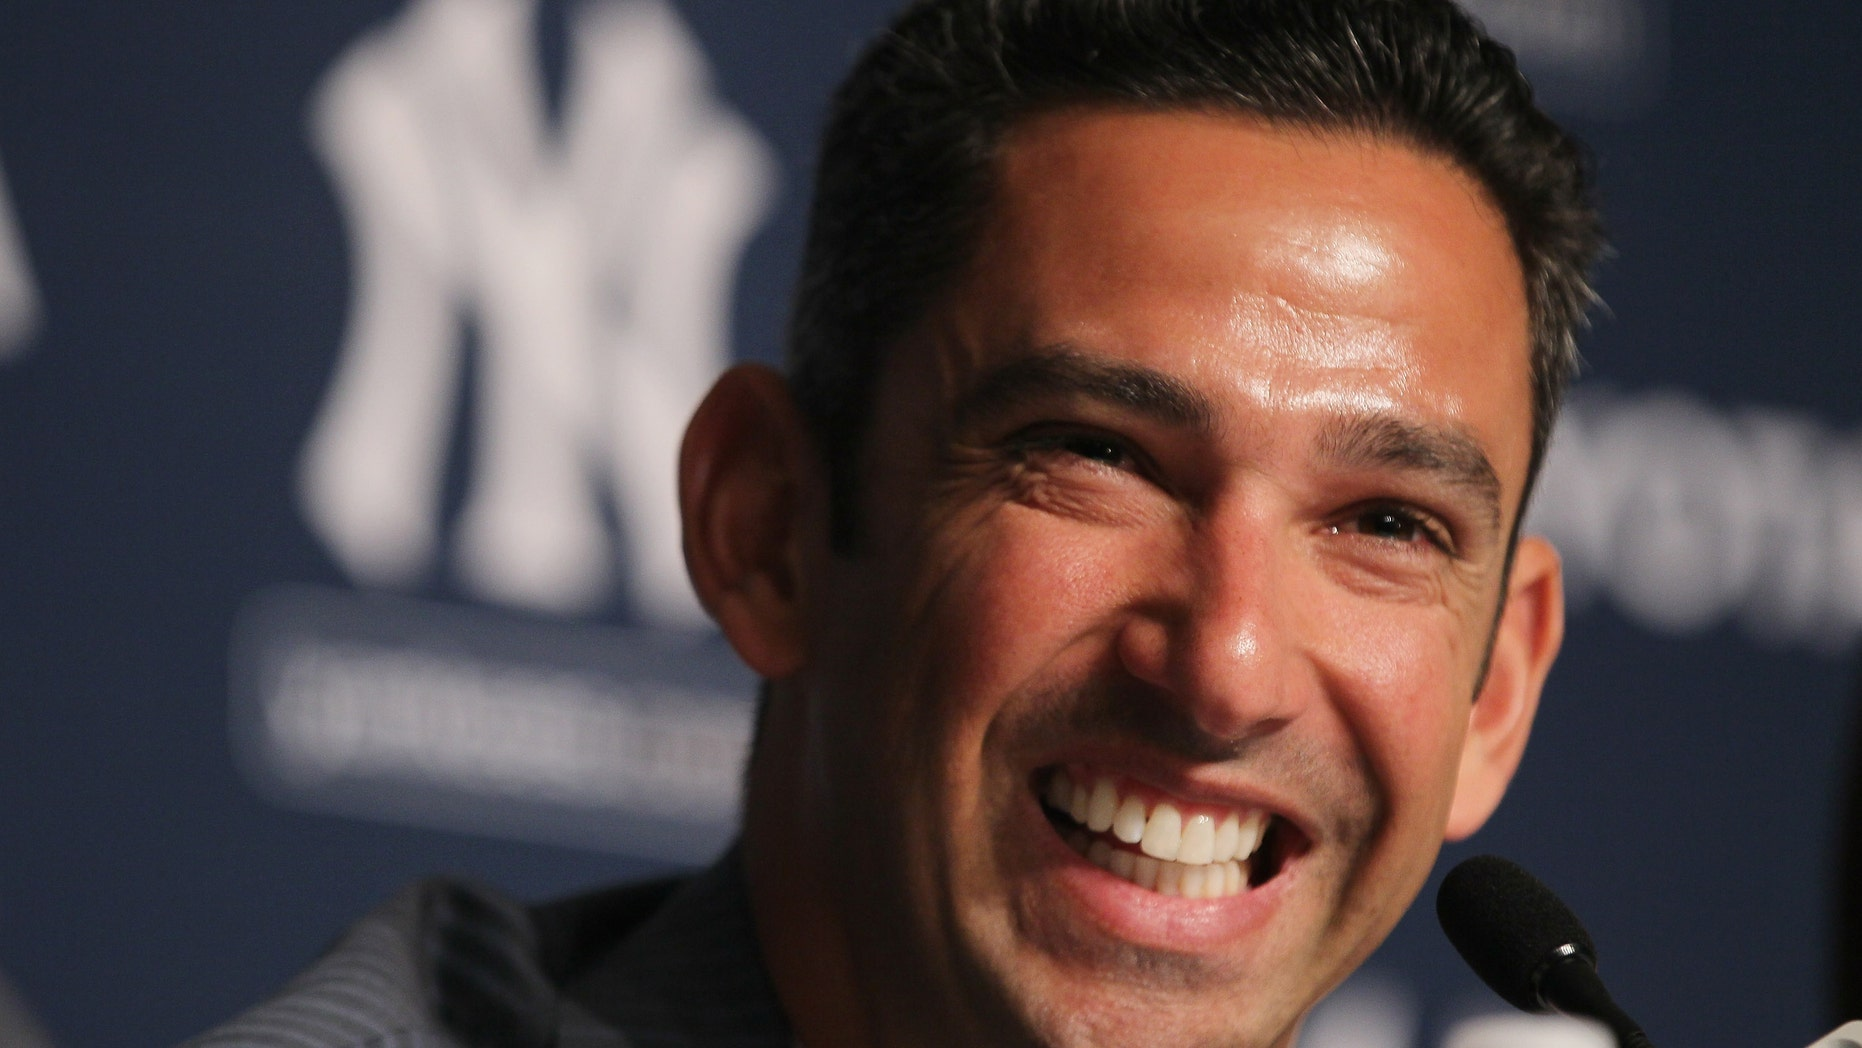 Jorge Posada addresses the media during a press conference to announce his retirement from the New York Yankees at Yankee Stadium on January 24, 2012 in the Bronx borough of  New York City.  (Photo by Mike Stobe/Getty Images)